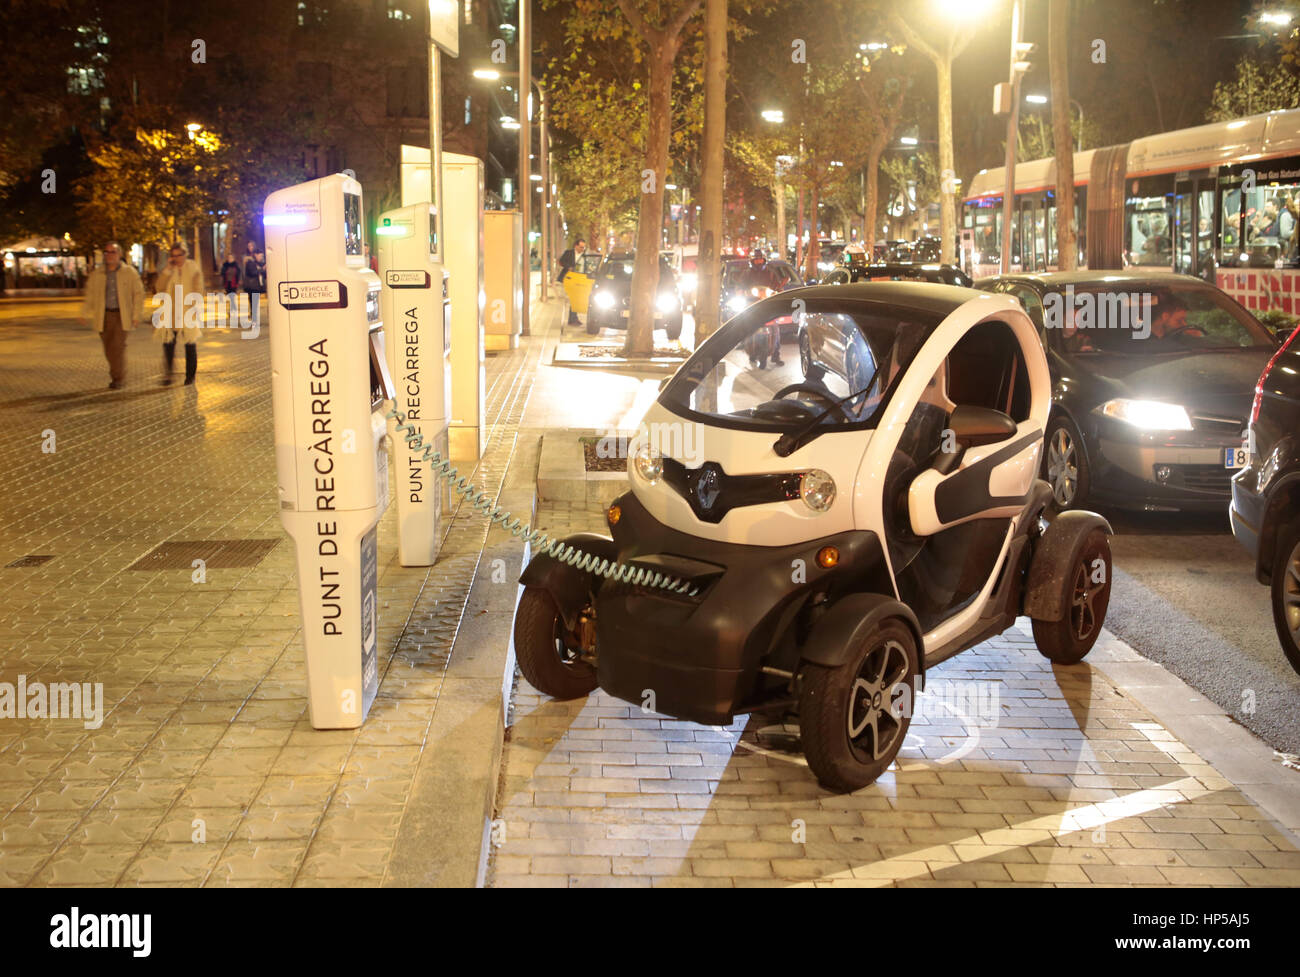 electric car in a public recharge point in Barcelona - Stock Image